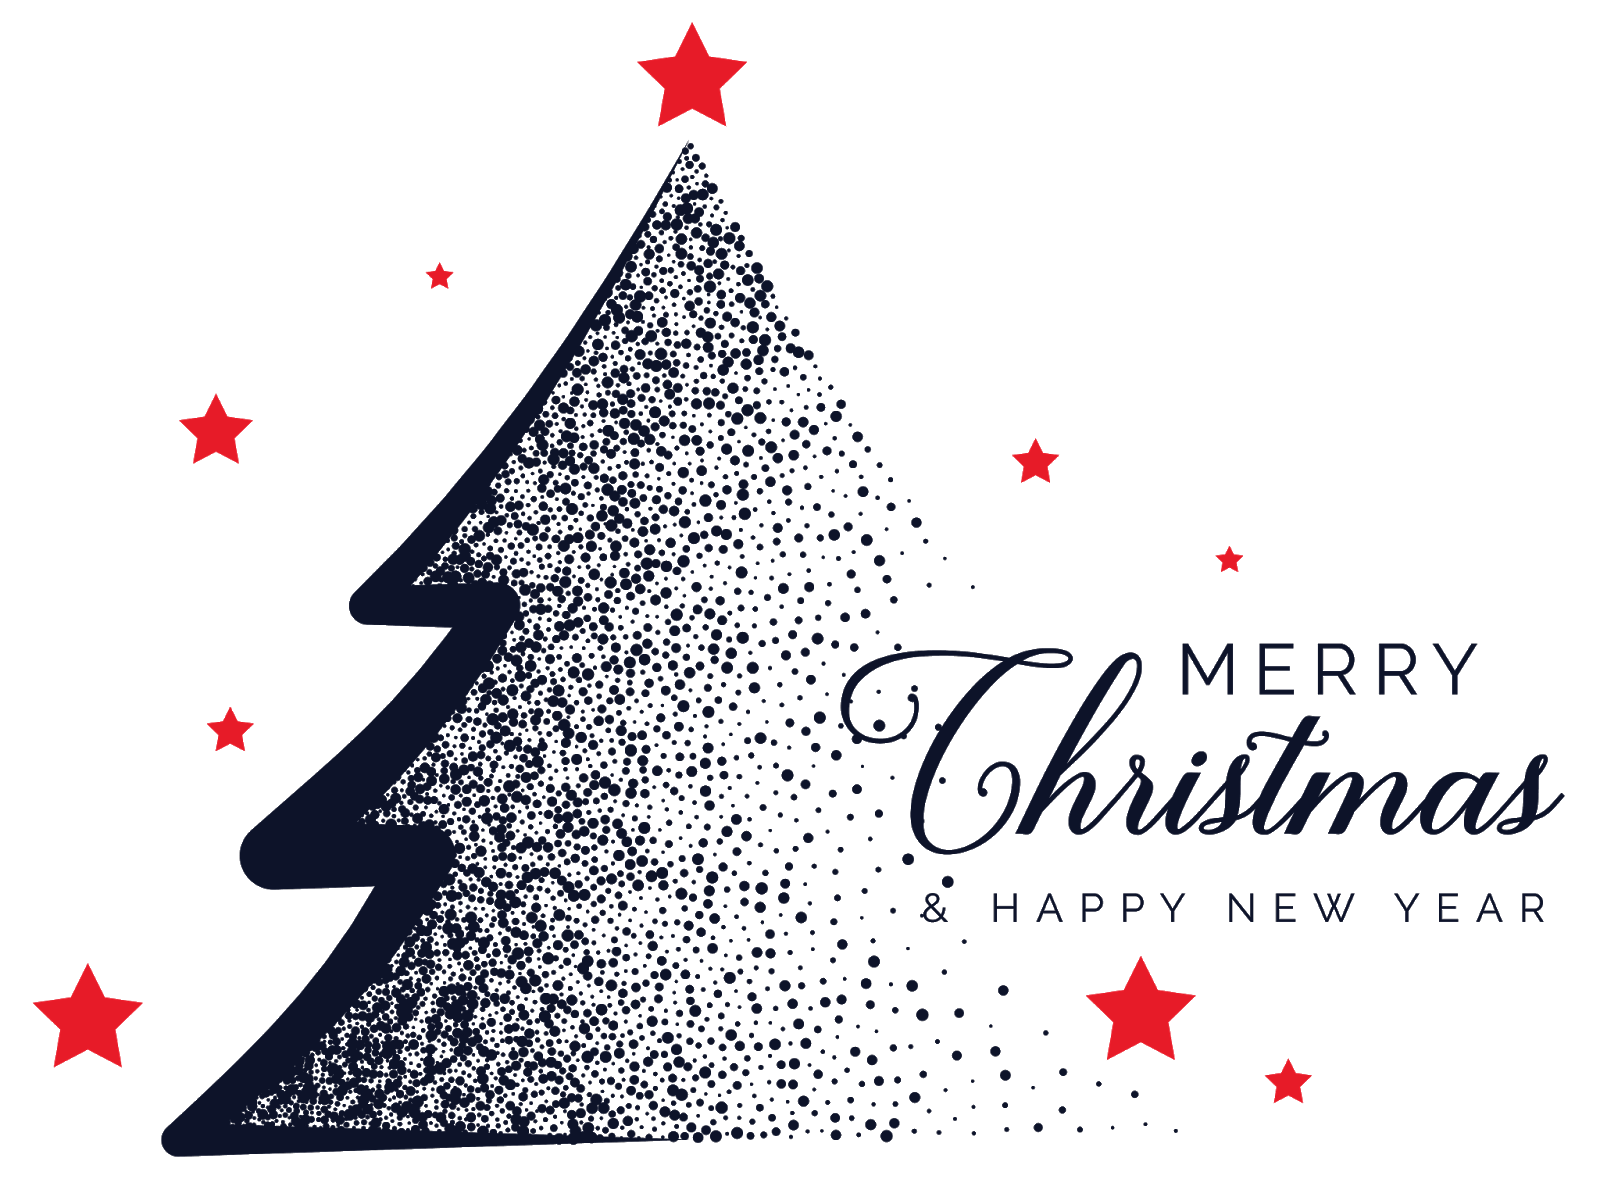 Png For Christmas - Merry Christmas PNG Images   PNG All